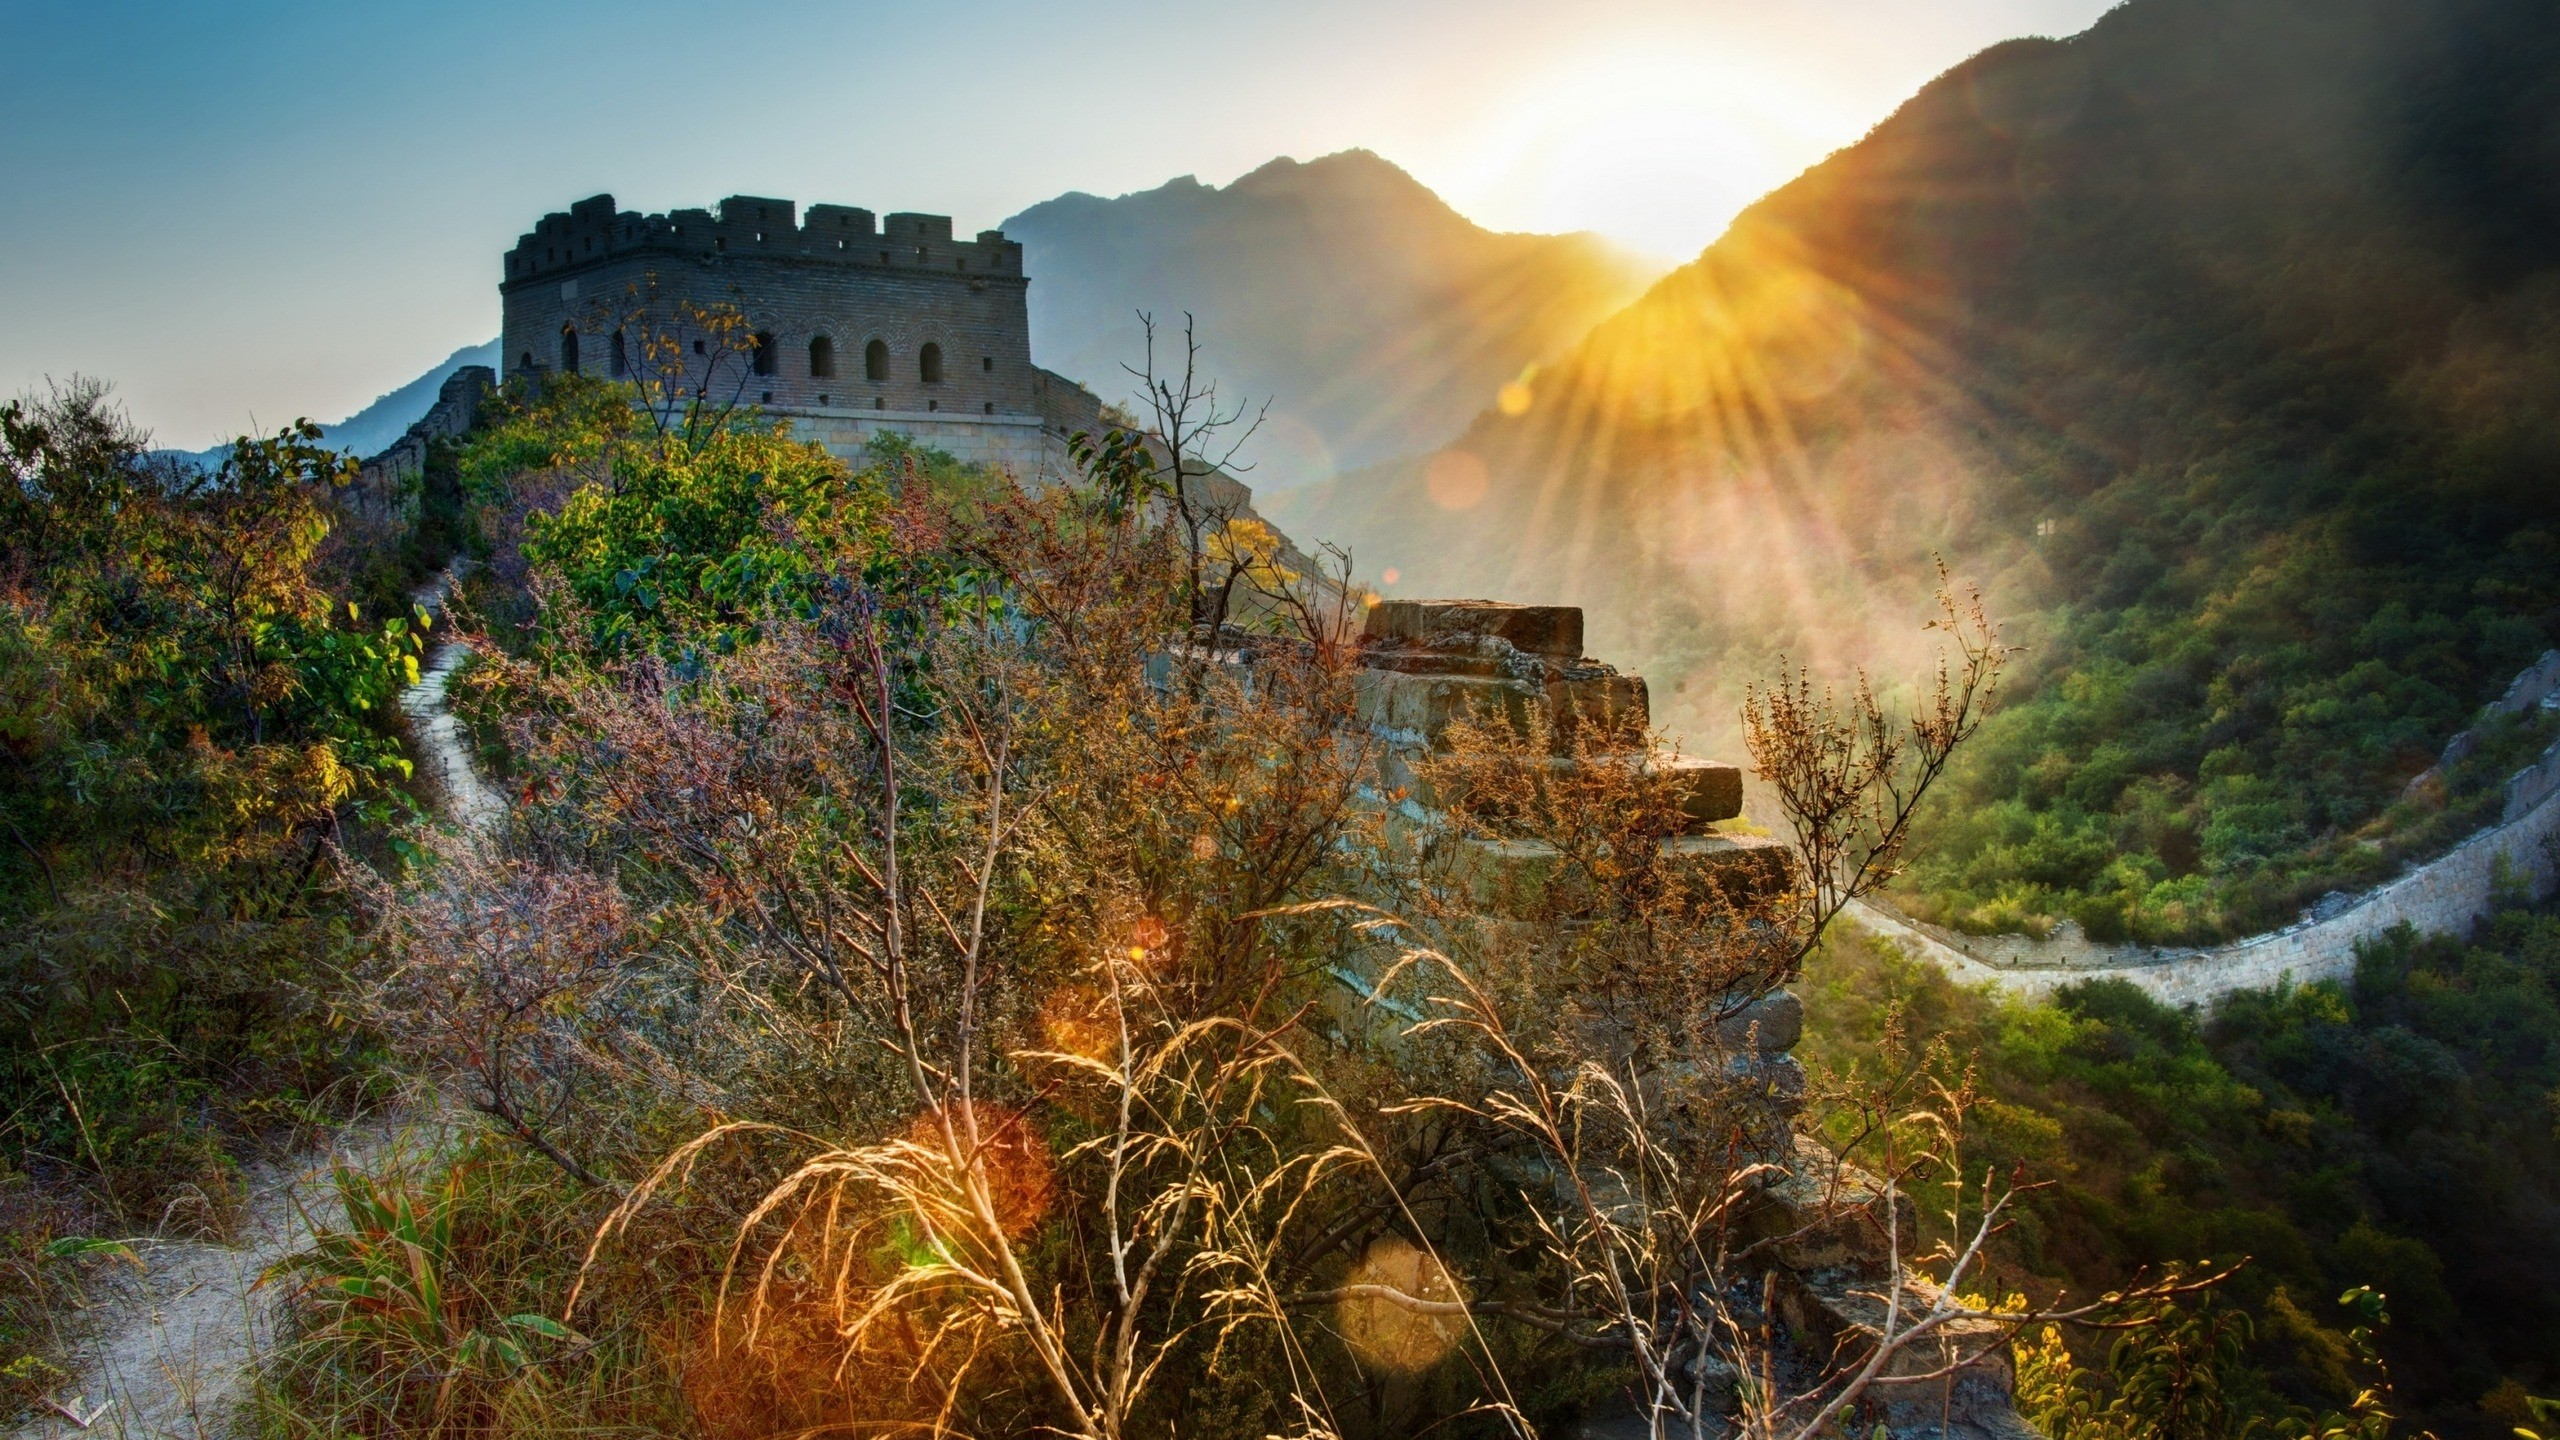 The Great Wall of China Landscape